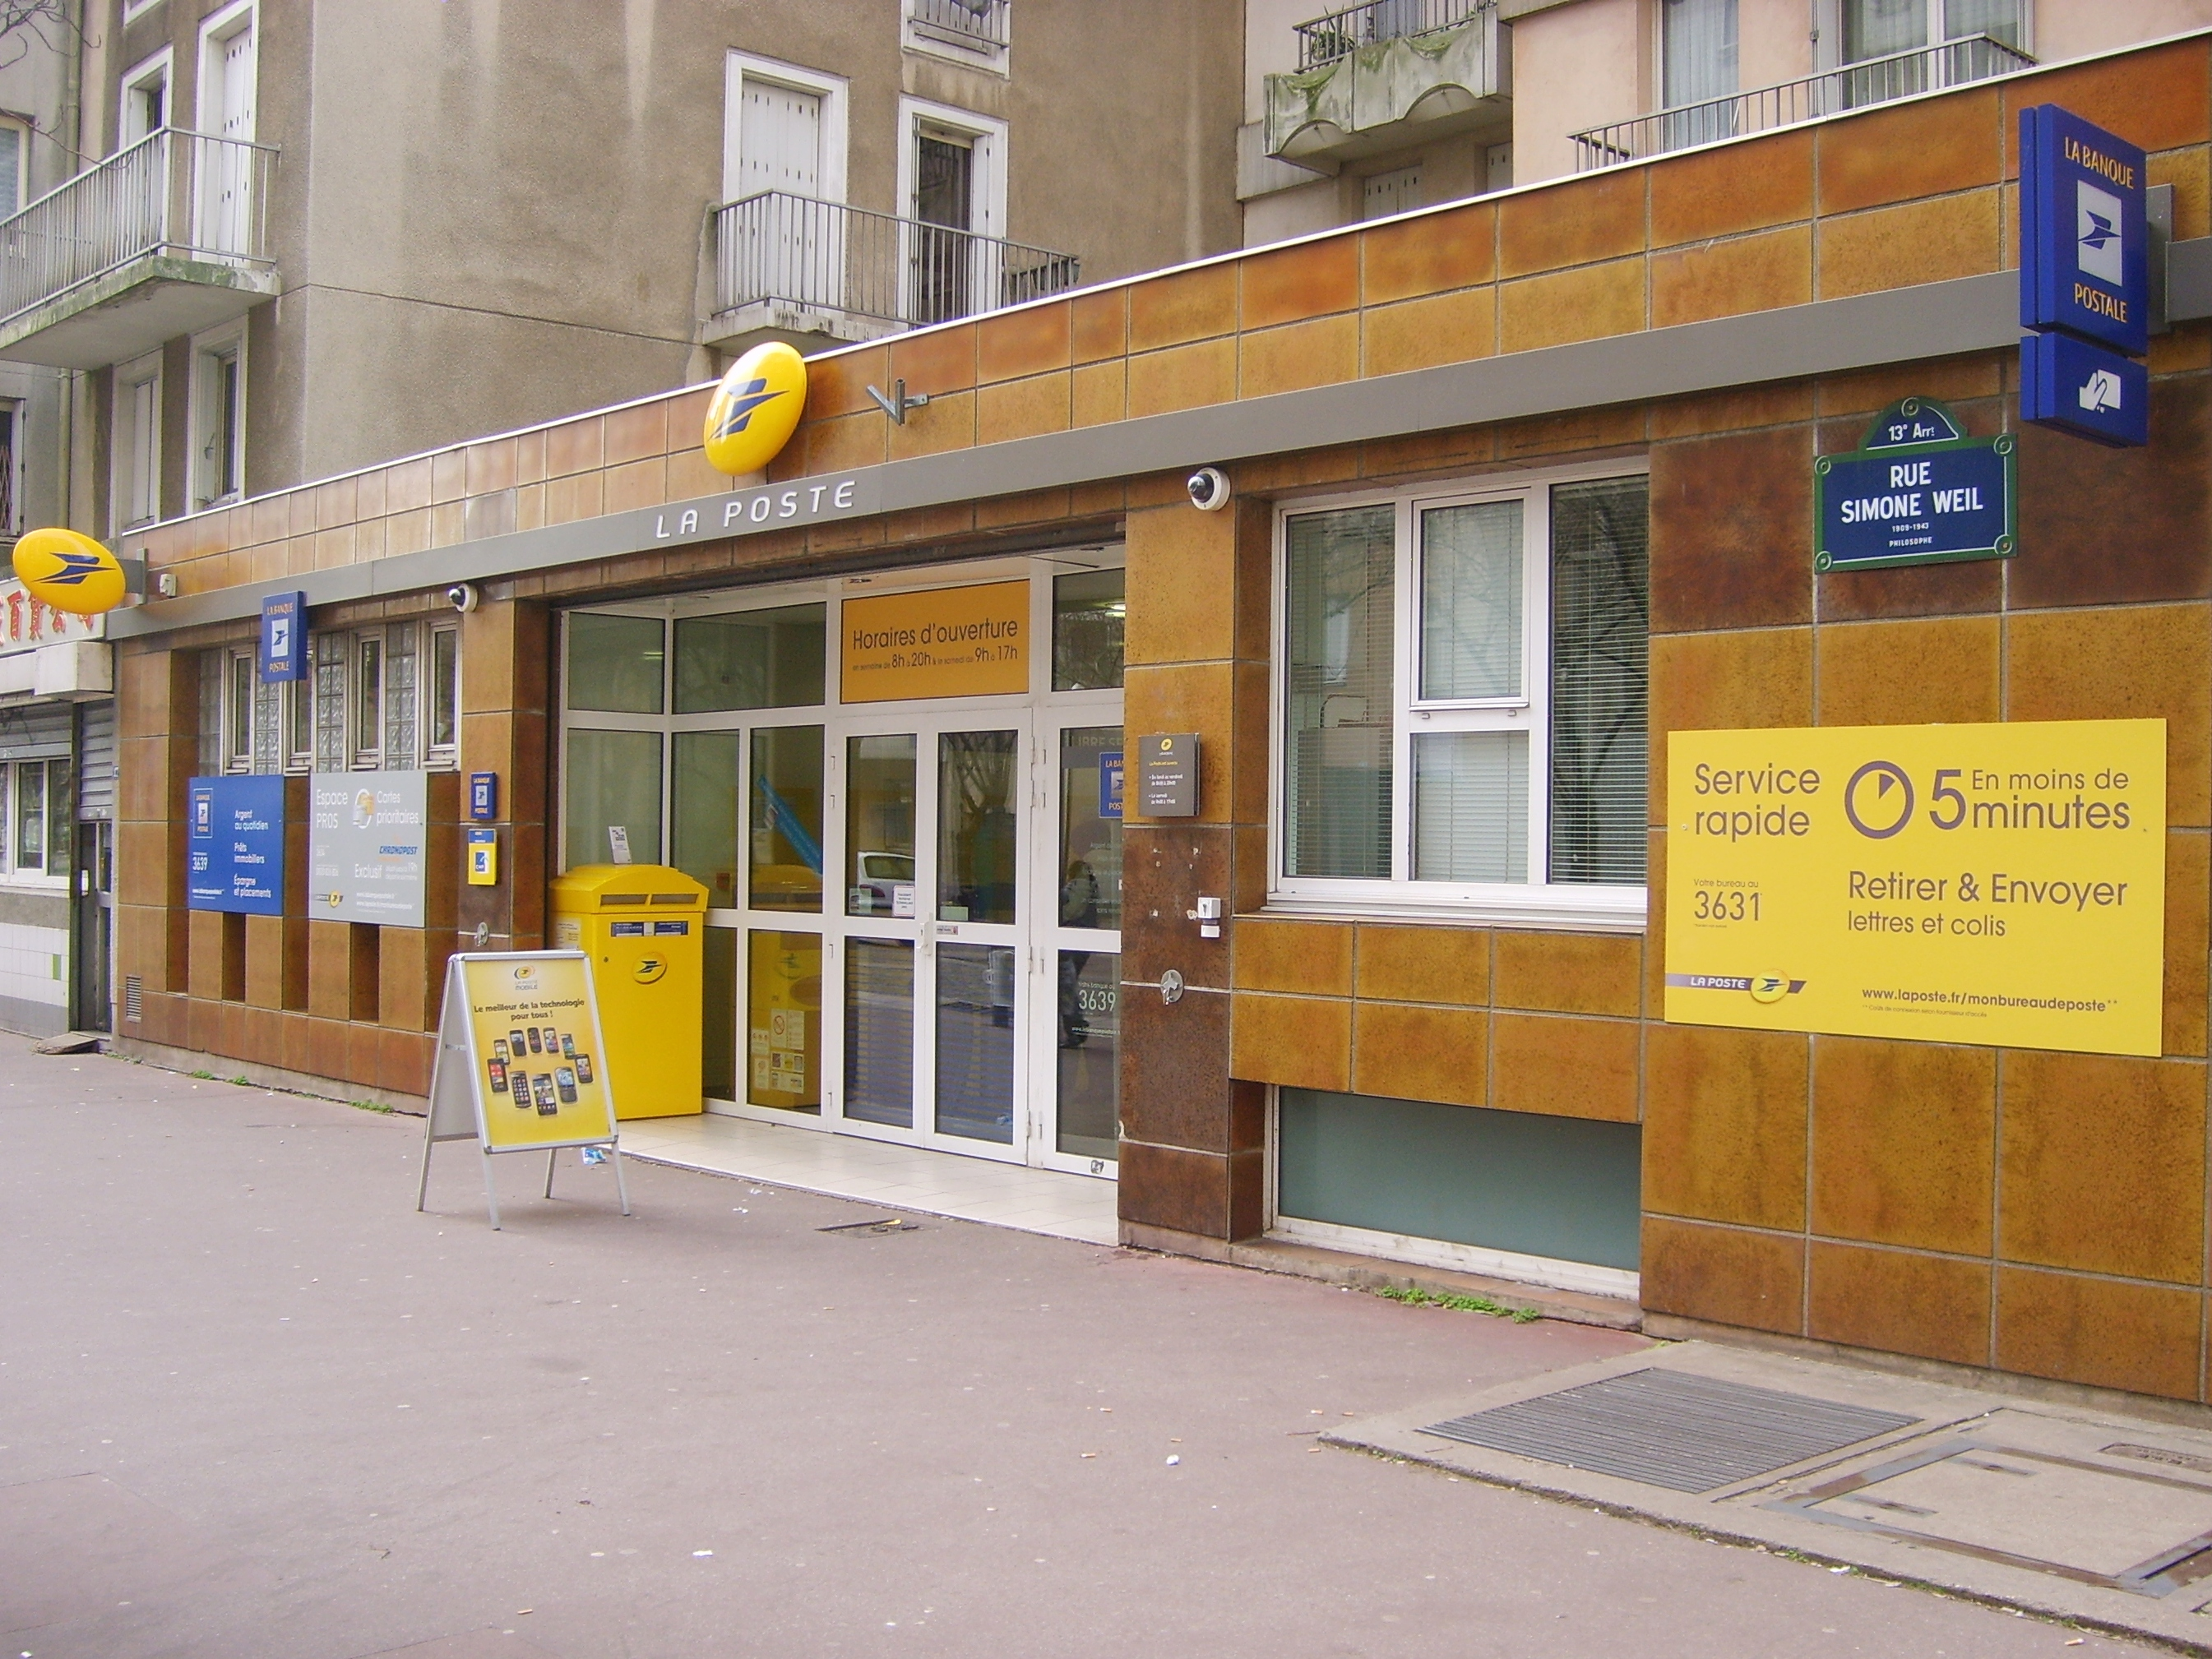 File:bureau de poste à paris.jpg wikimedia commons